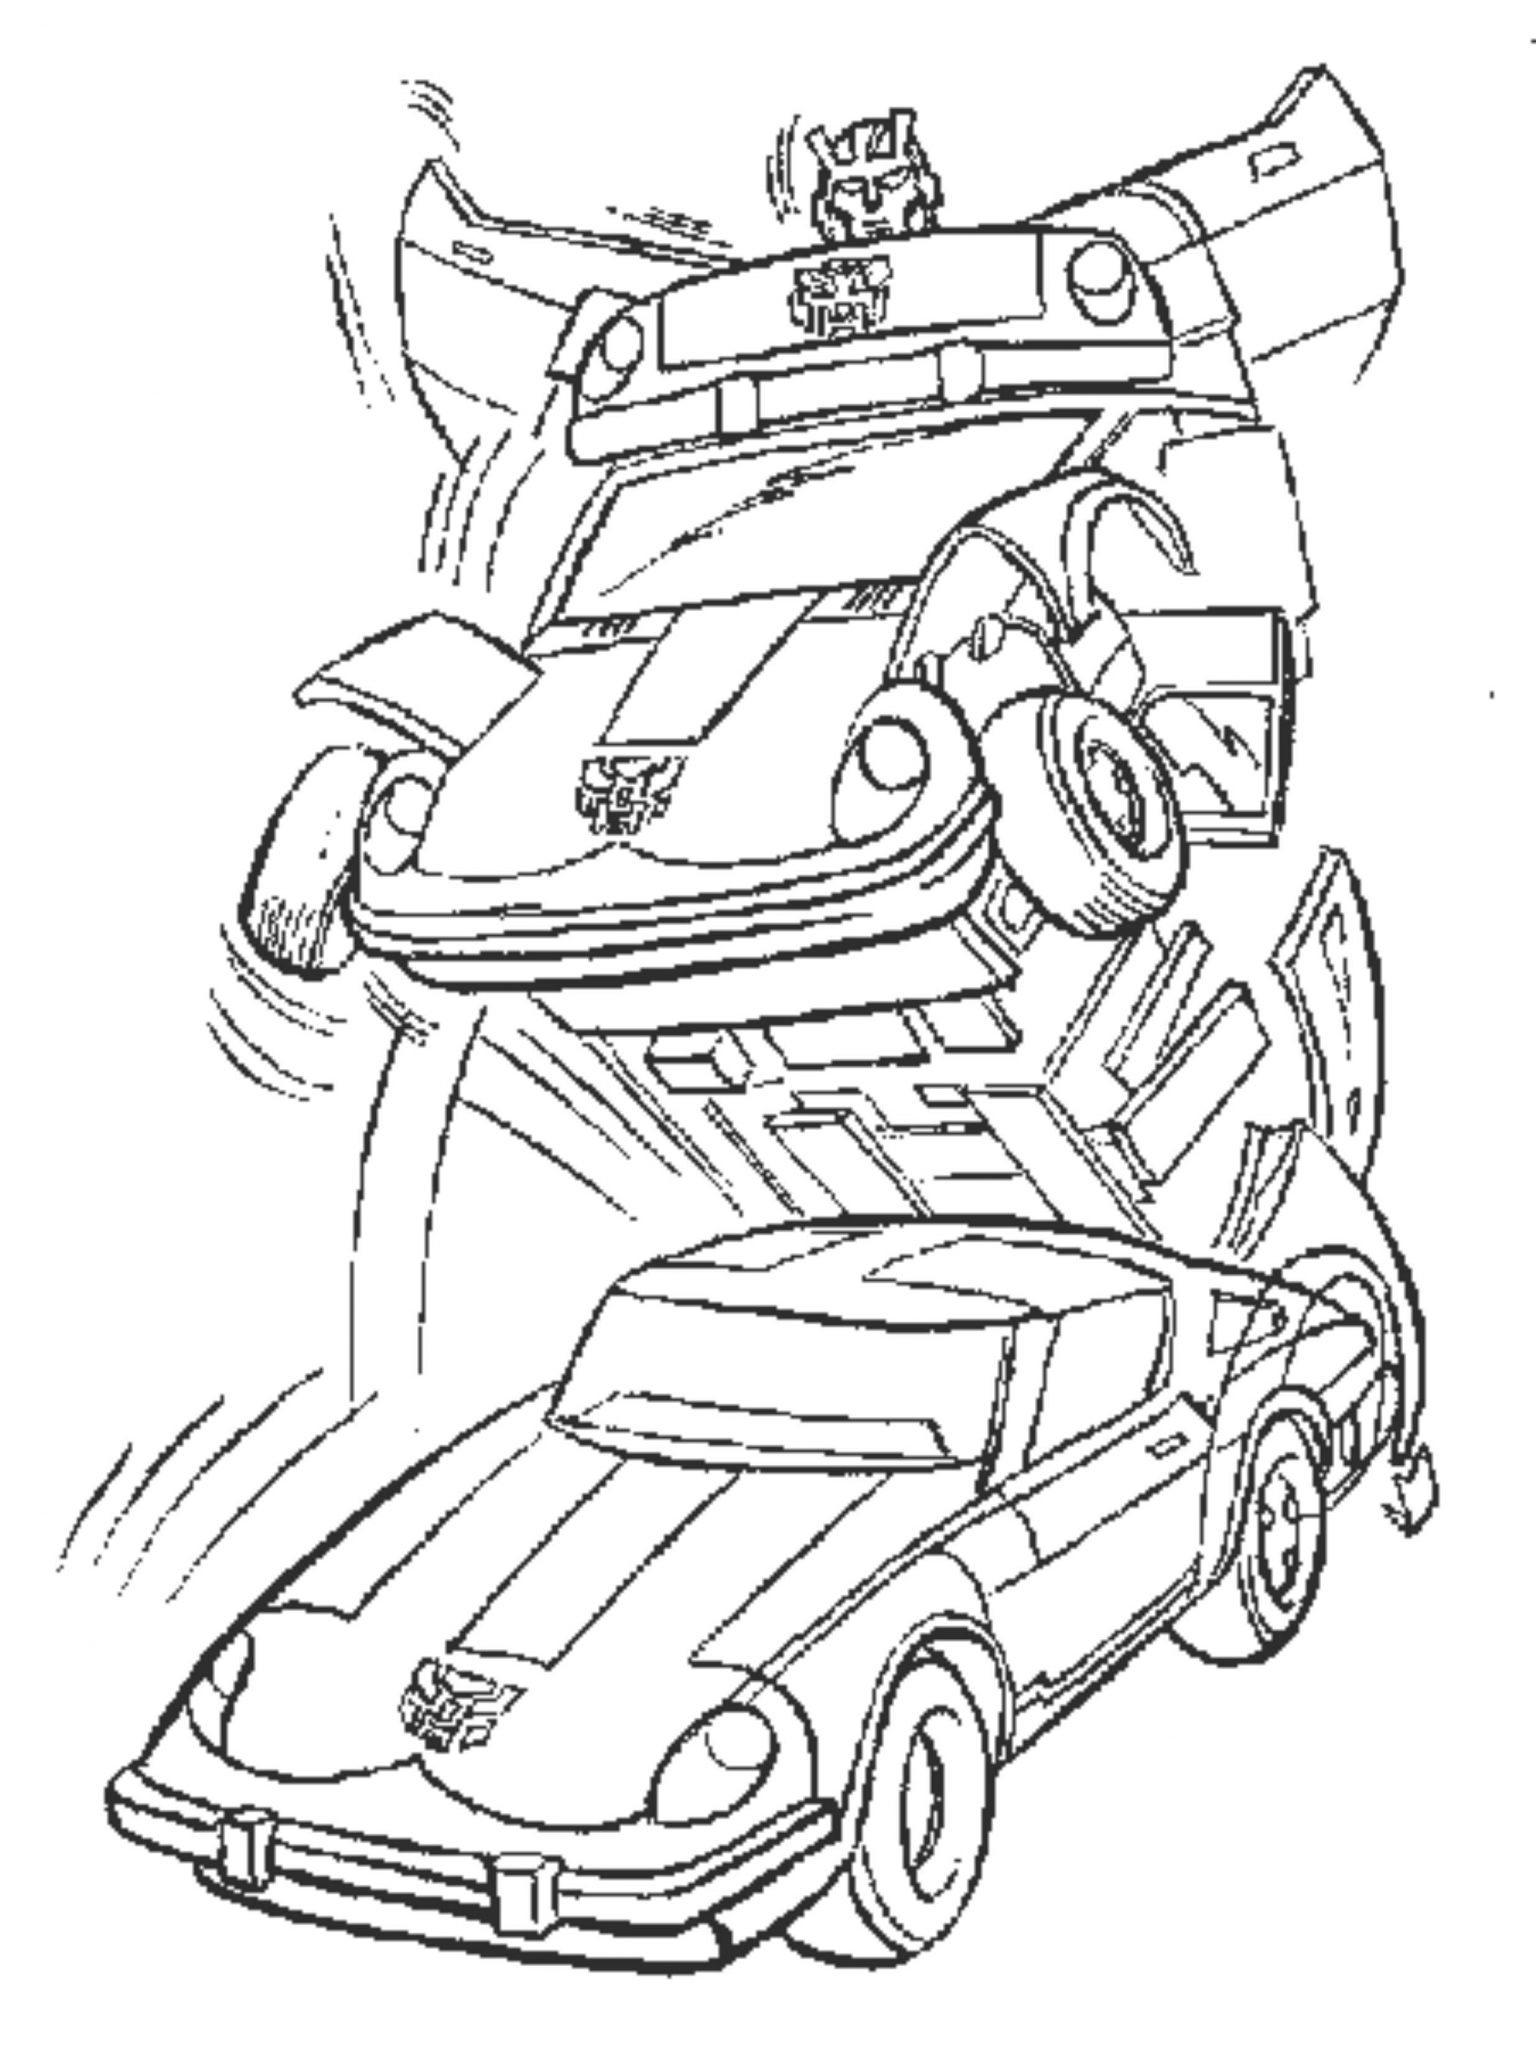 bumblebee-tranformers-car-coloring-pages-printable